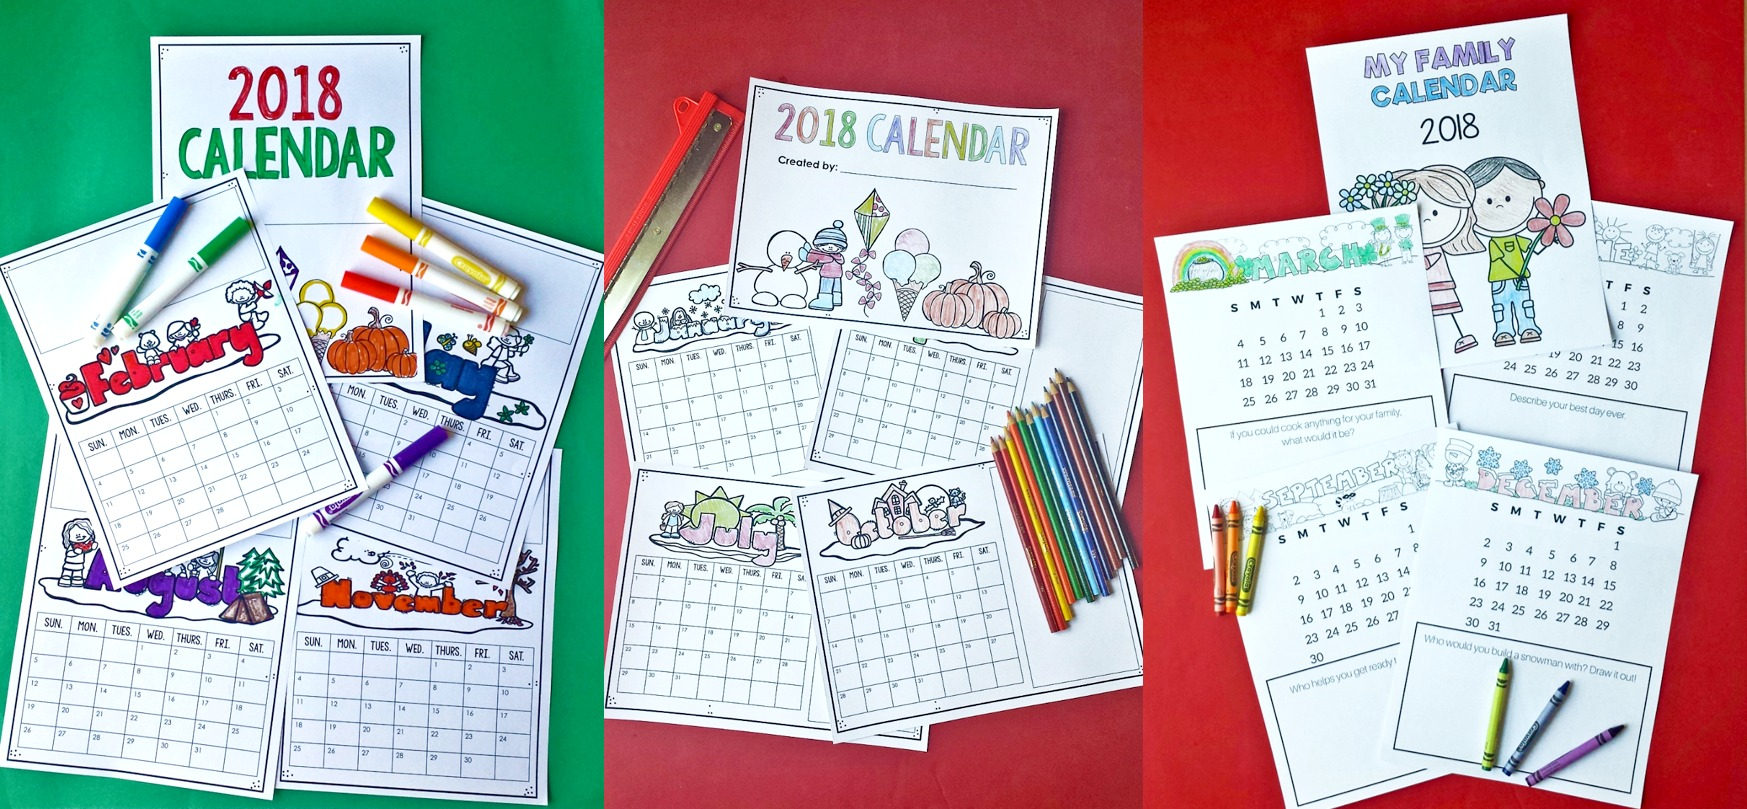 Parent Christmas gift FREEBIE from students. Having your students create gifts for their parents is a great way to teach students the value of giving. Use these FREE calendar templates to create a family calendar as a family gift.